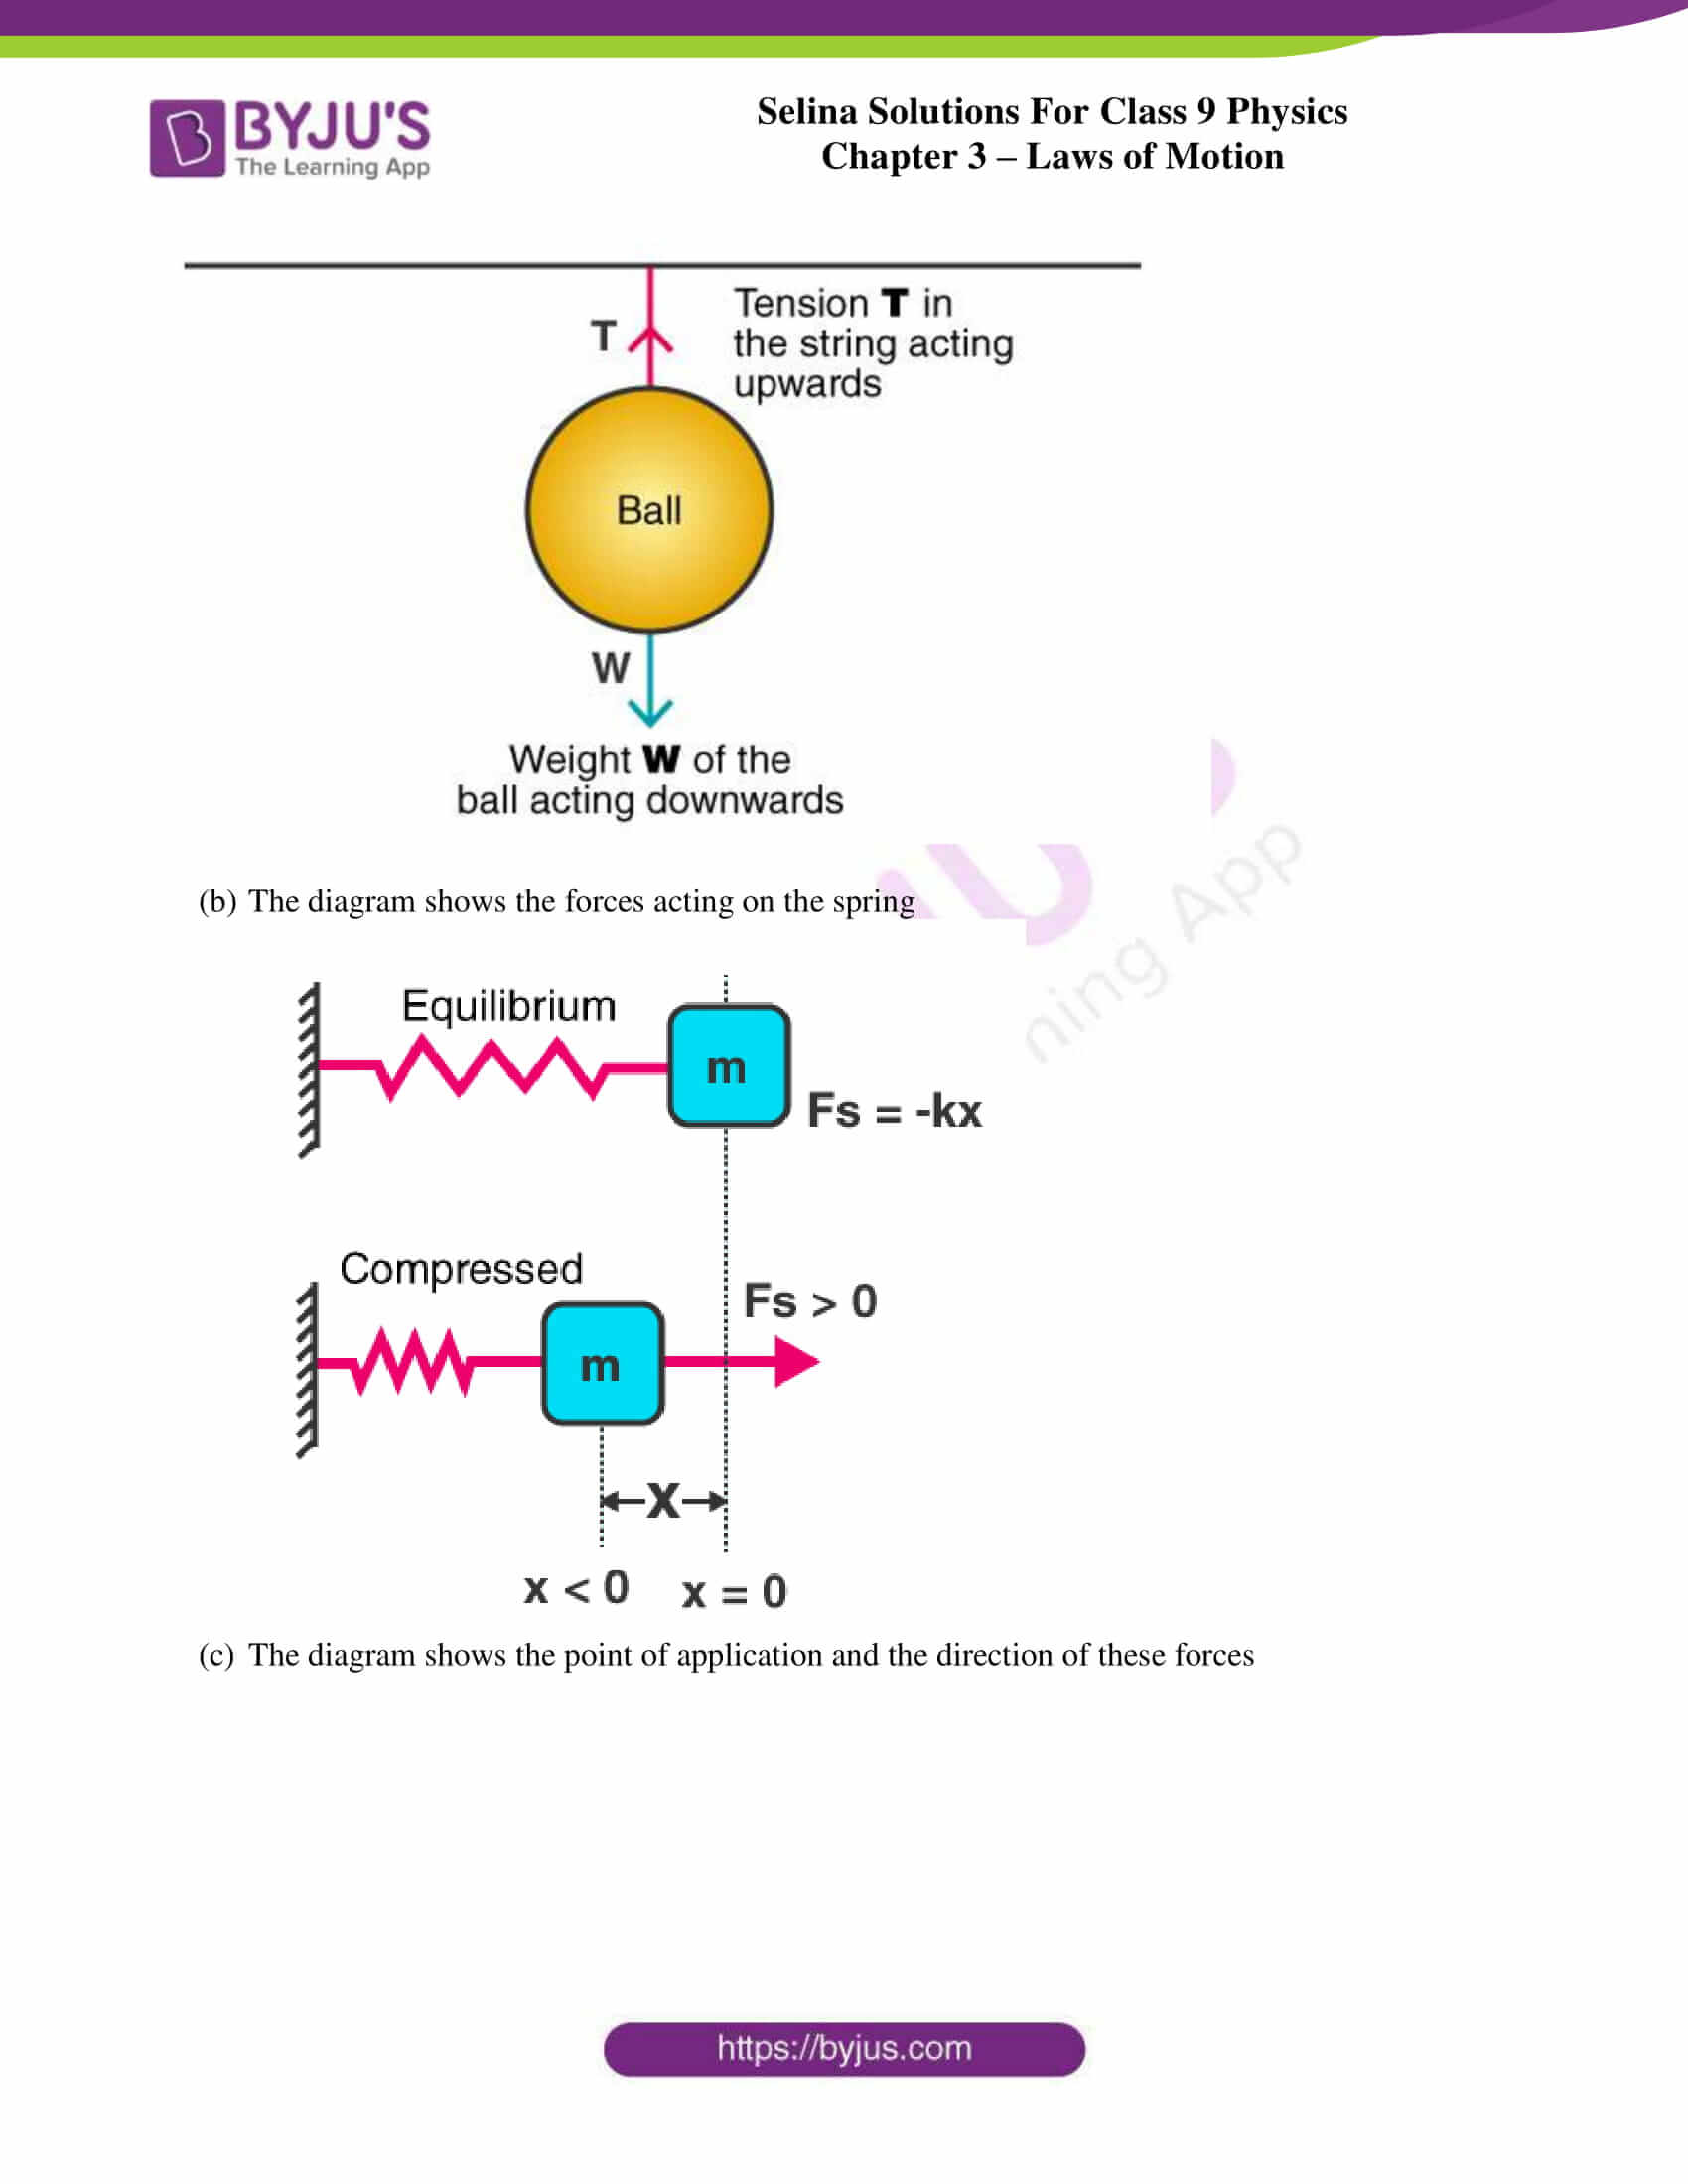 selina solutions class 9 physics chapter 3 Laws of Motion part 02